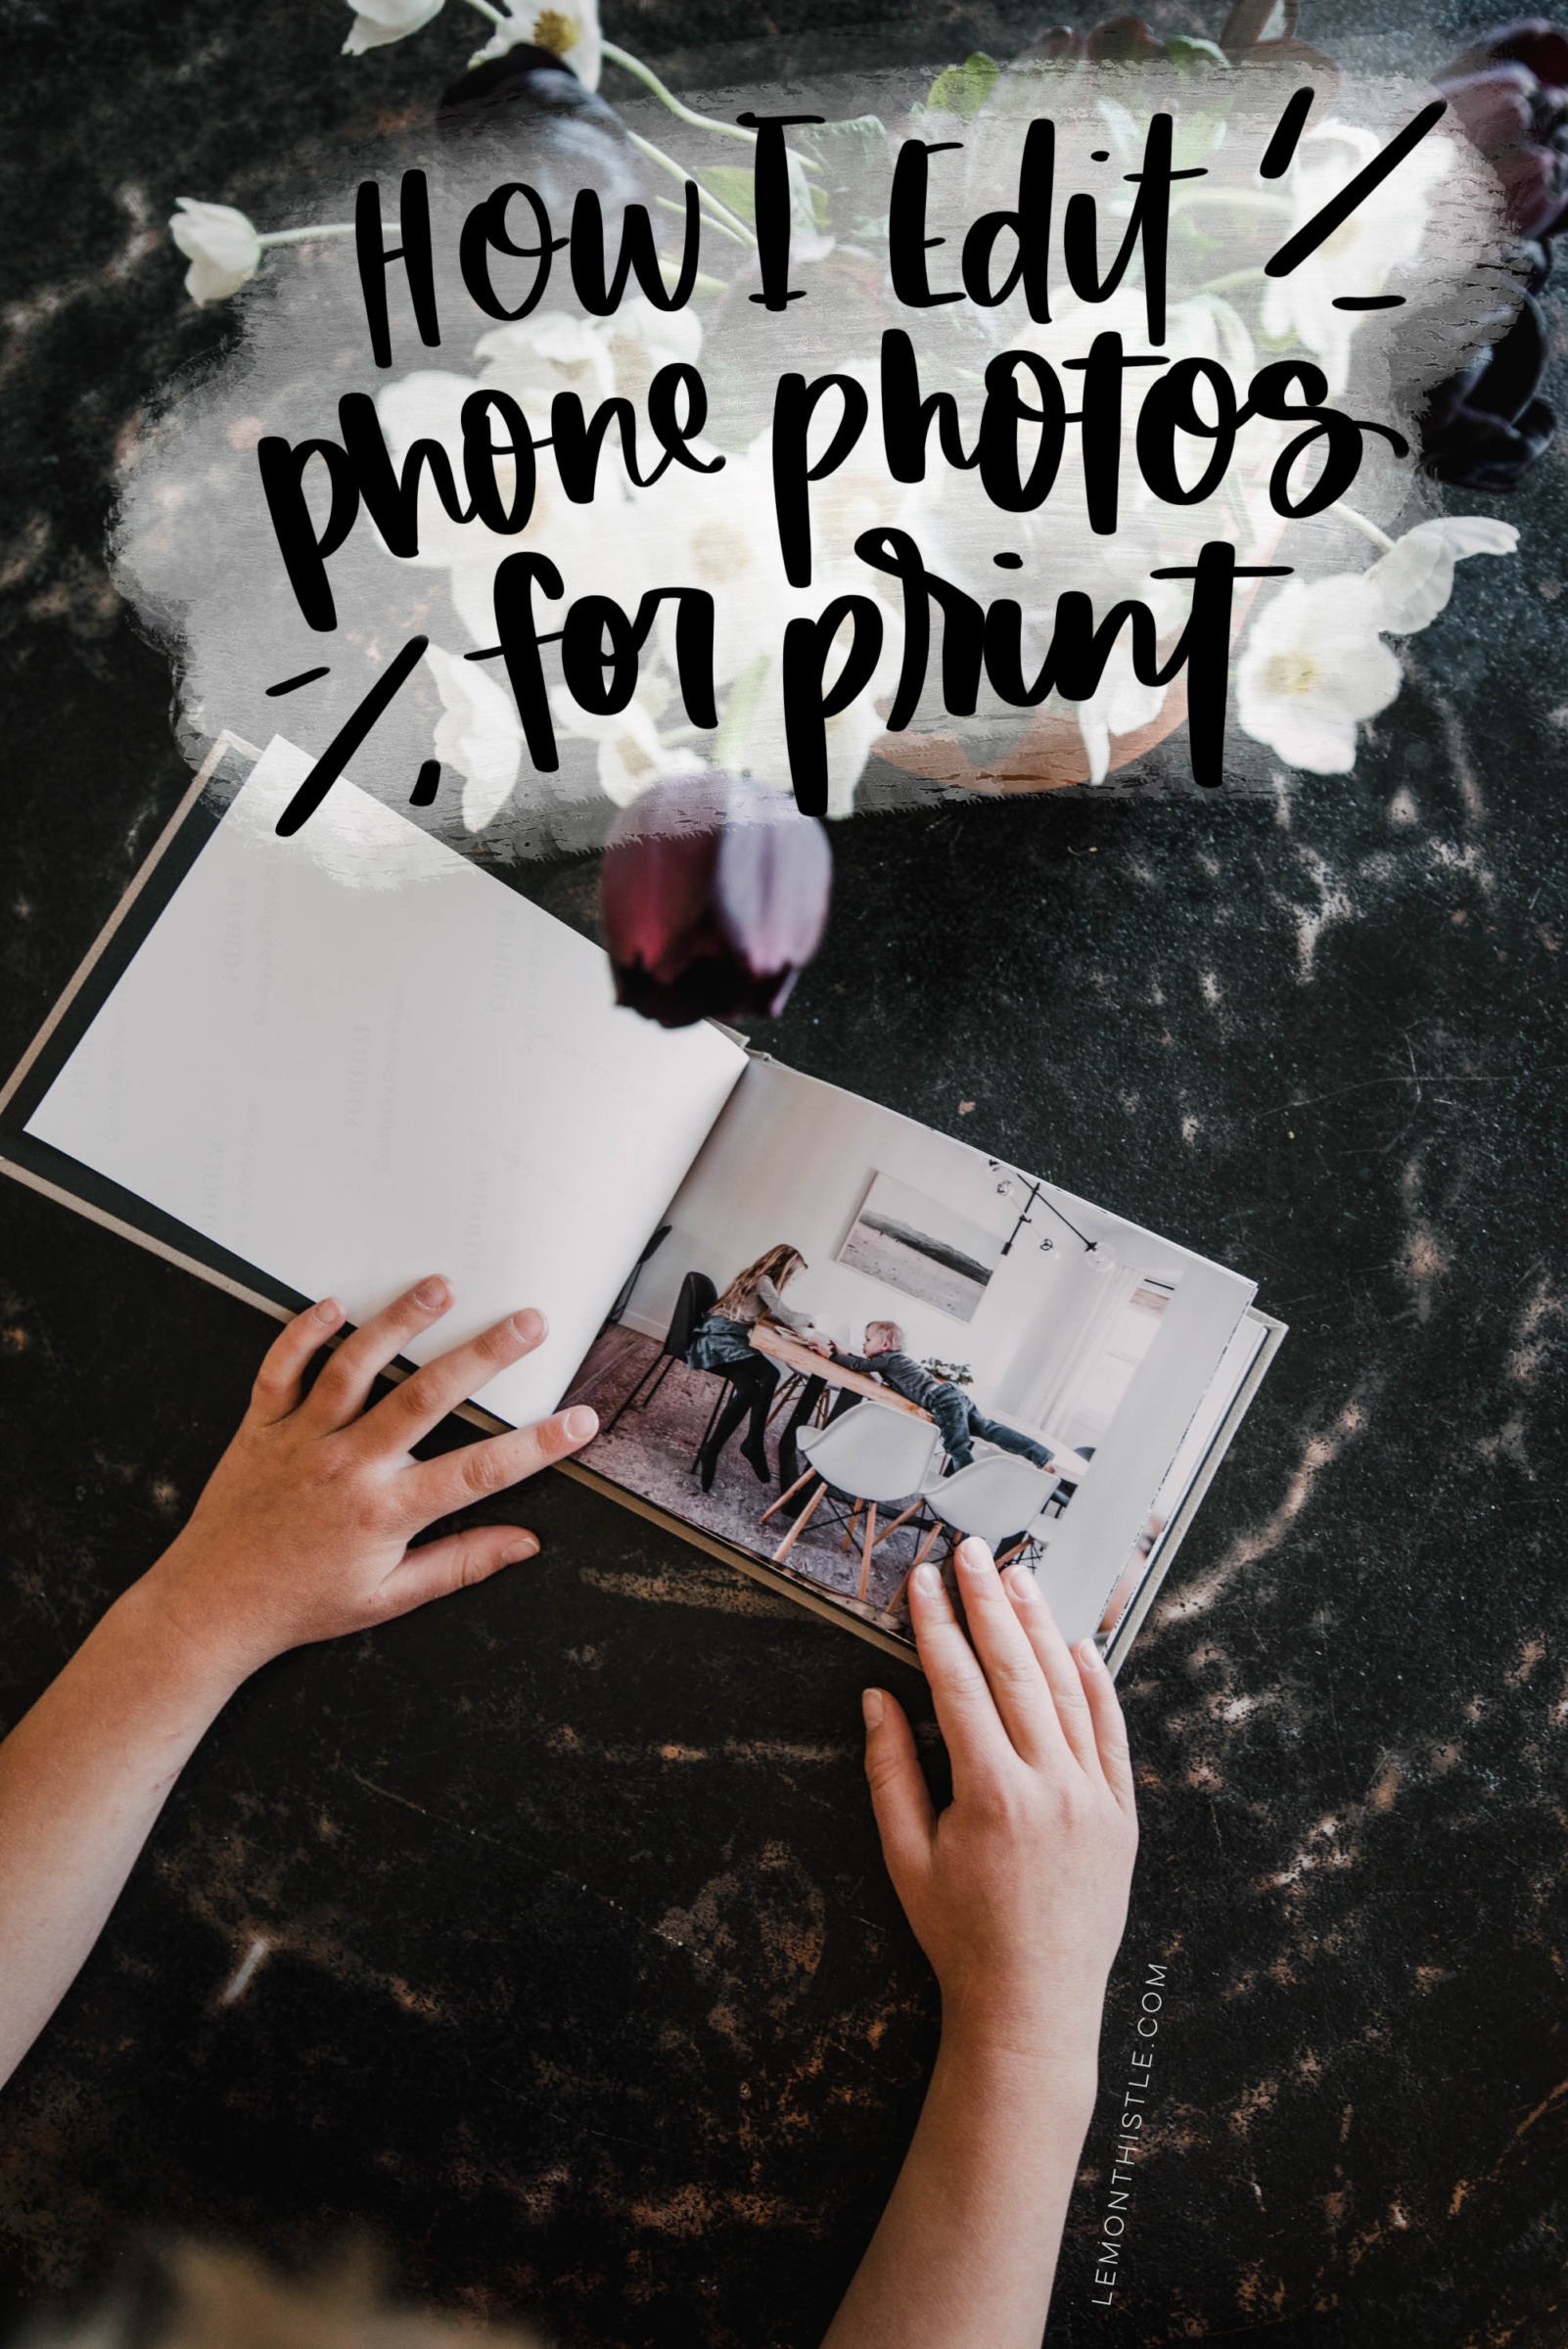 Sharing my process for editing photos from my phone (or any photo!) for print